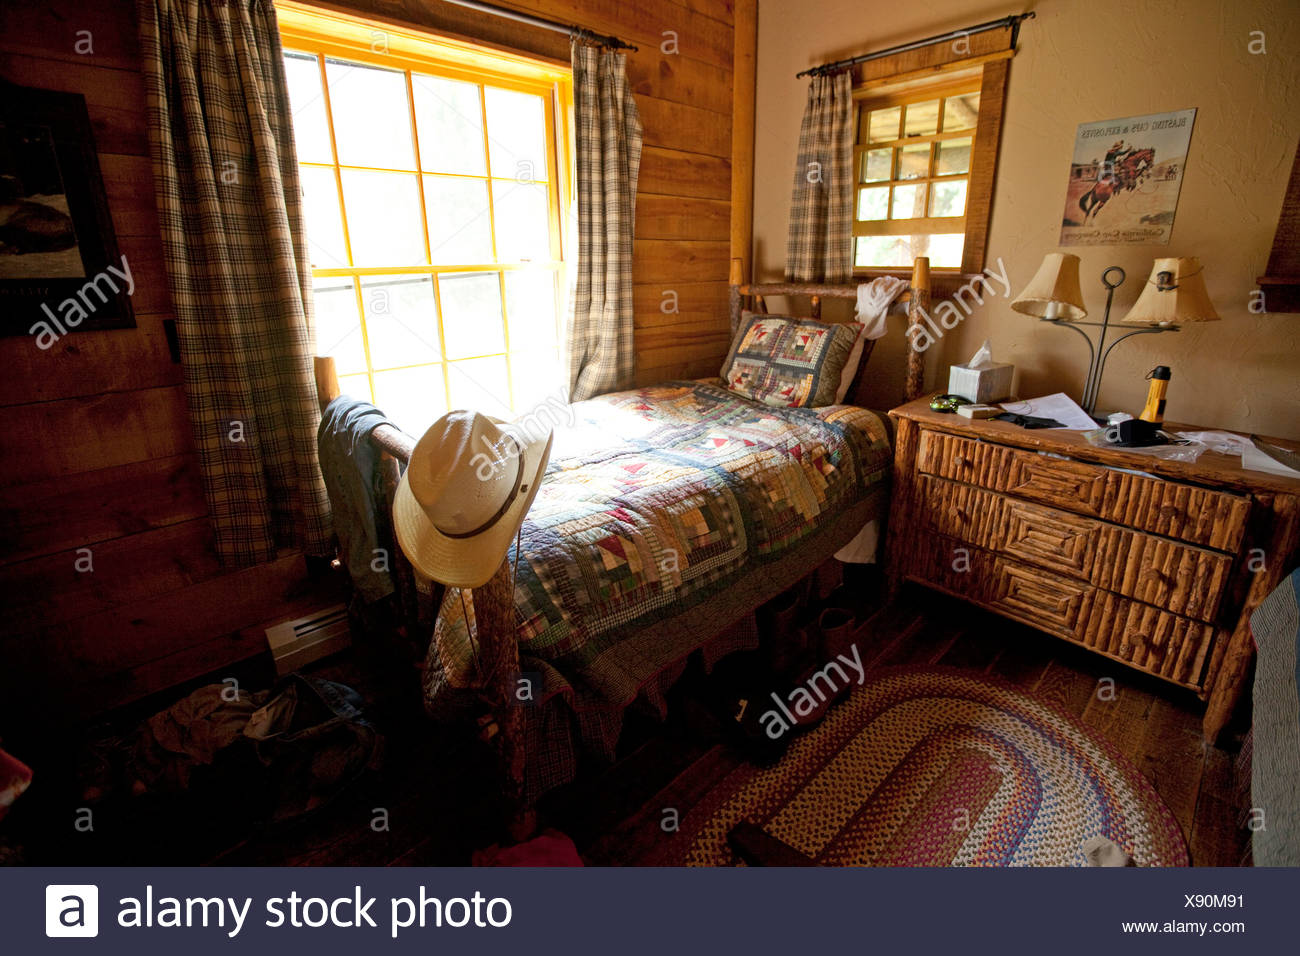 Cowgirls room in log cabin lodge on ranch in Montana, USA - Stock Image